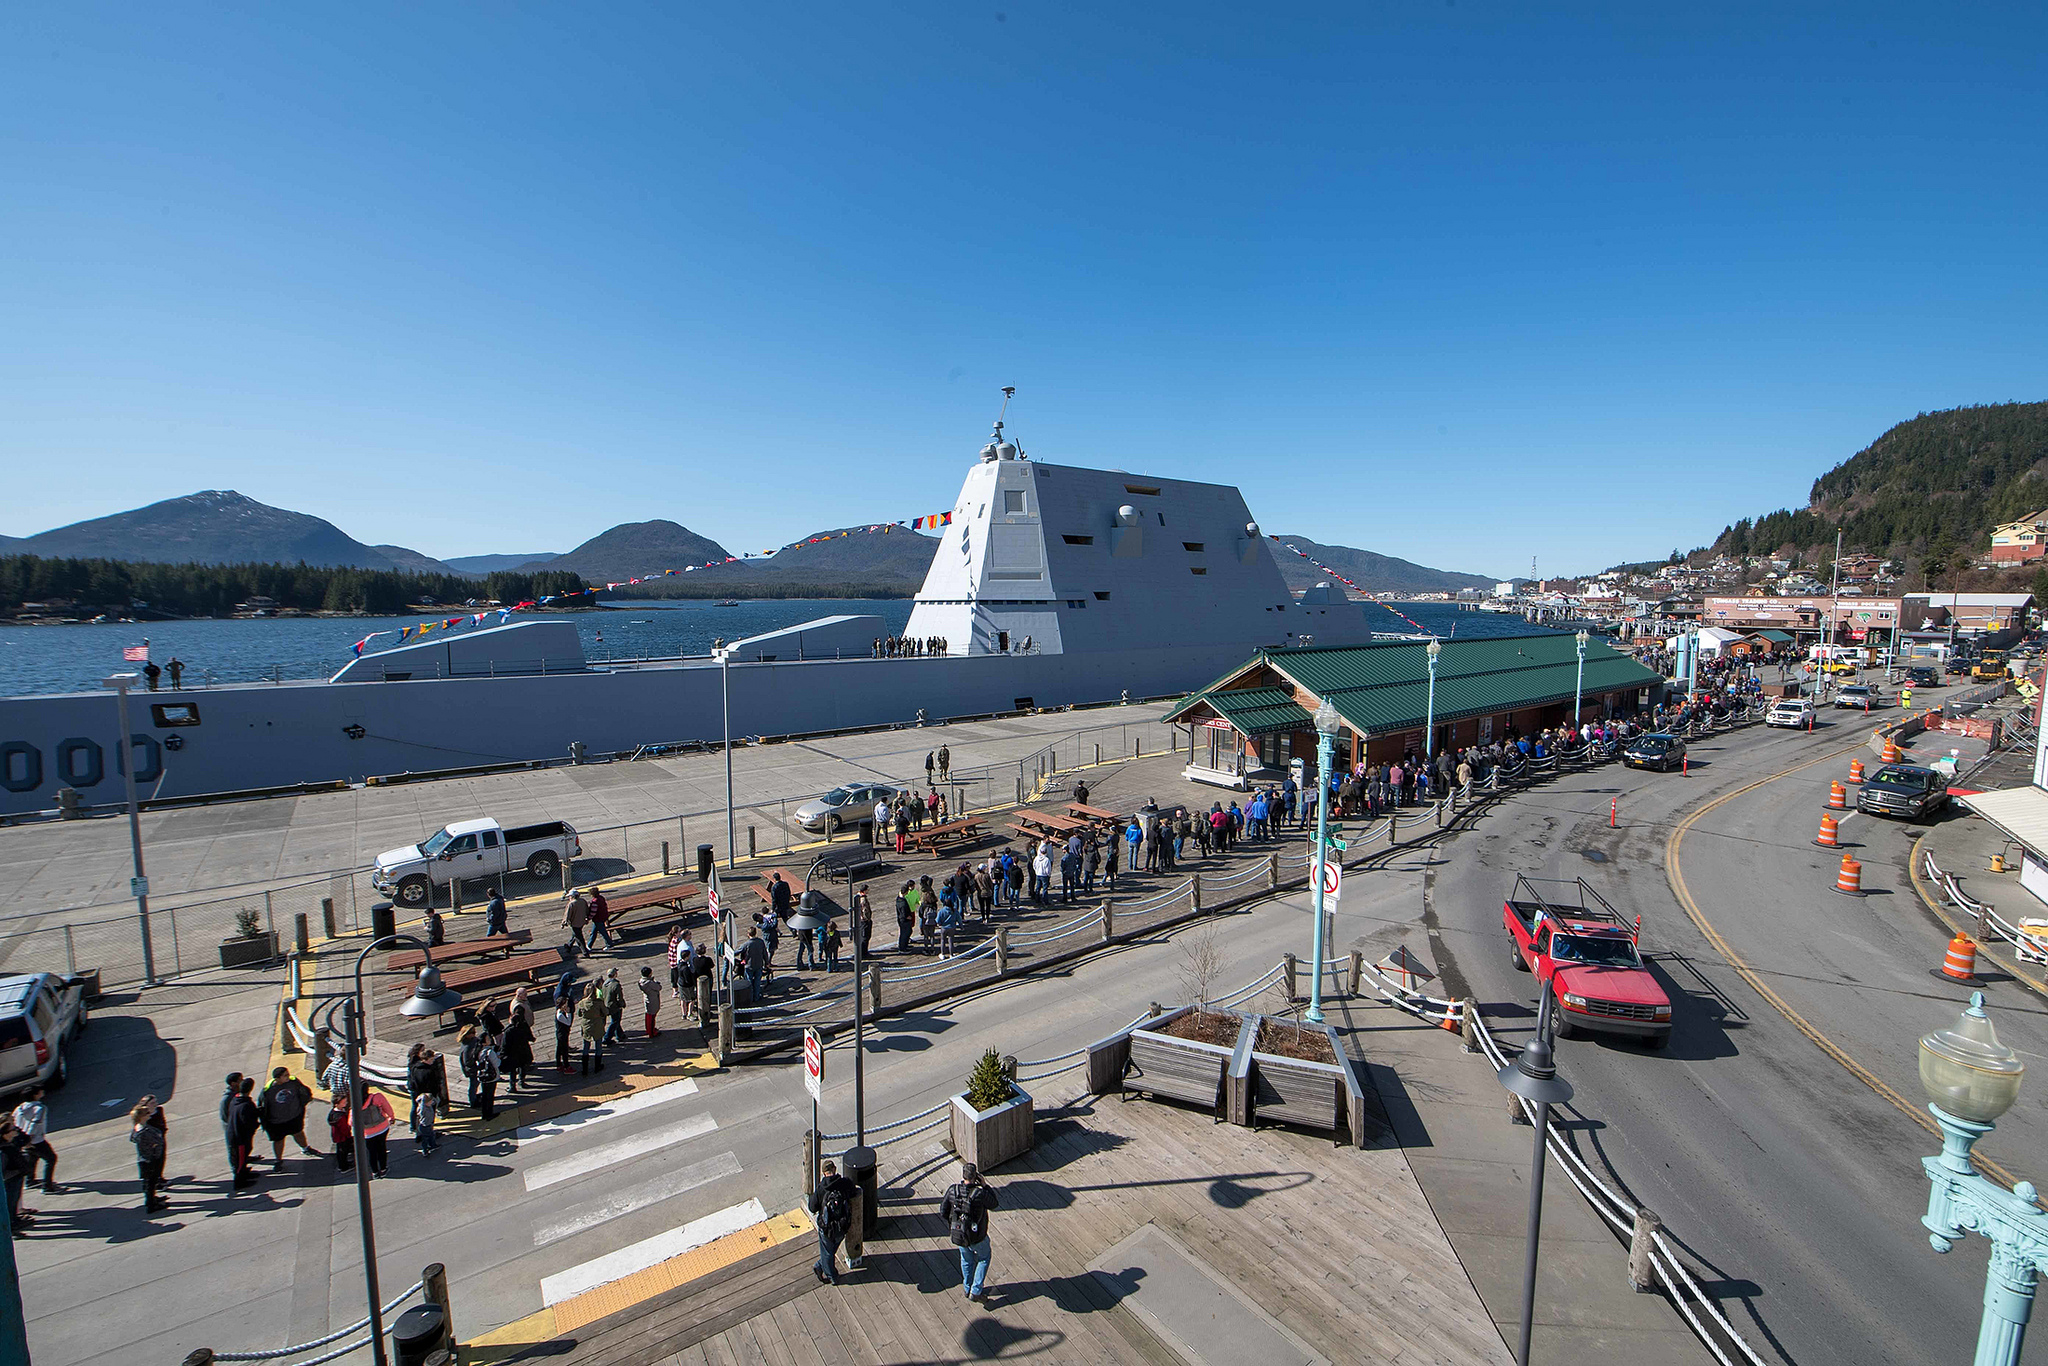 Visitors line up along the pier for a tour of the guided-missile destroyer USS Zumwalt (DDG 1000) on March 24, 2019, in Ketchikan, Alaska. (Mass Communications Specialist 2nd Class Jonathan Jiang/Navy)